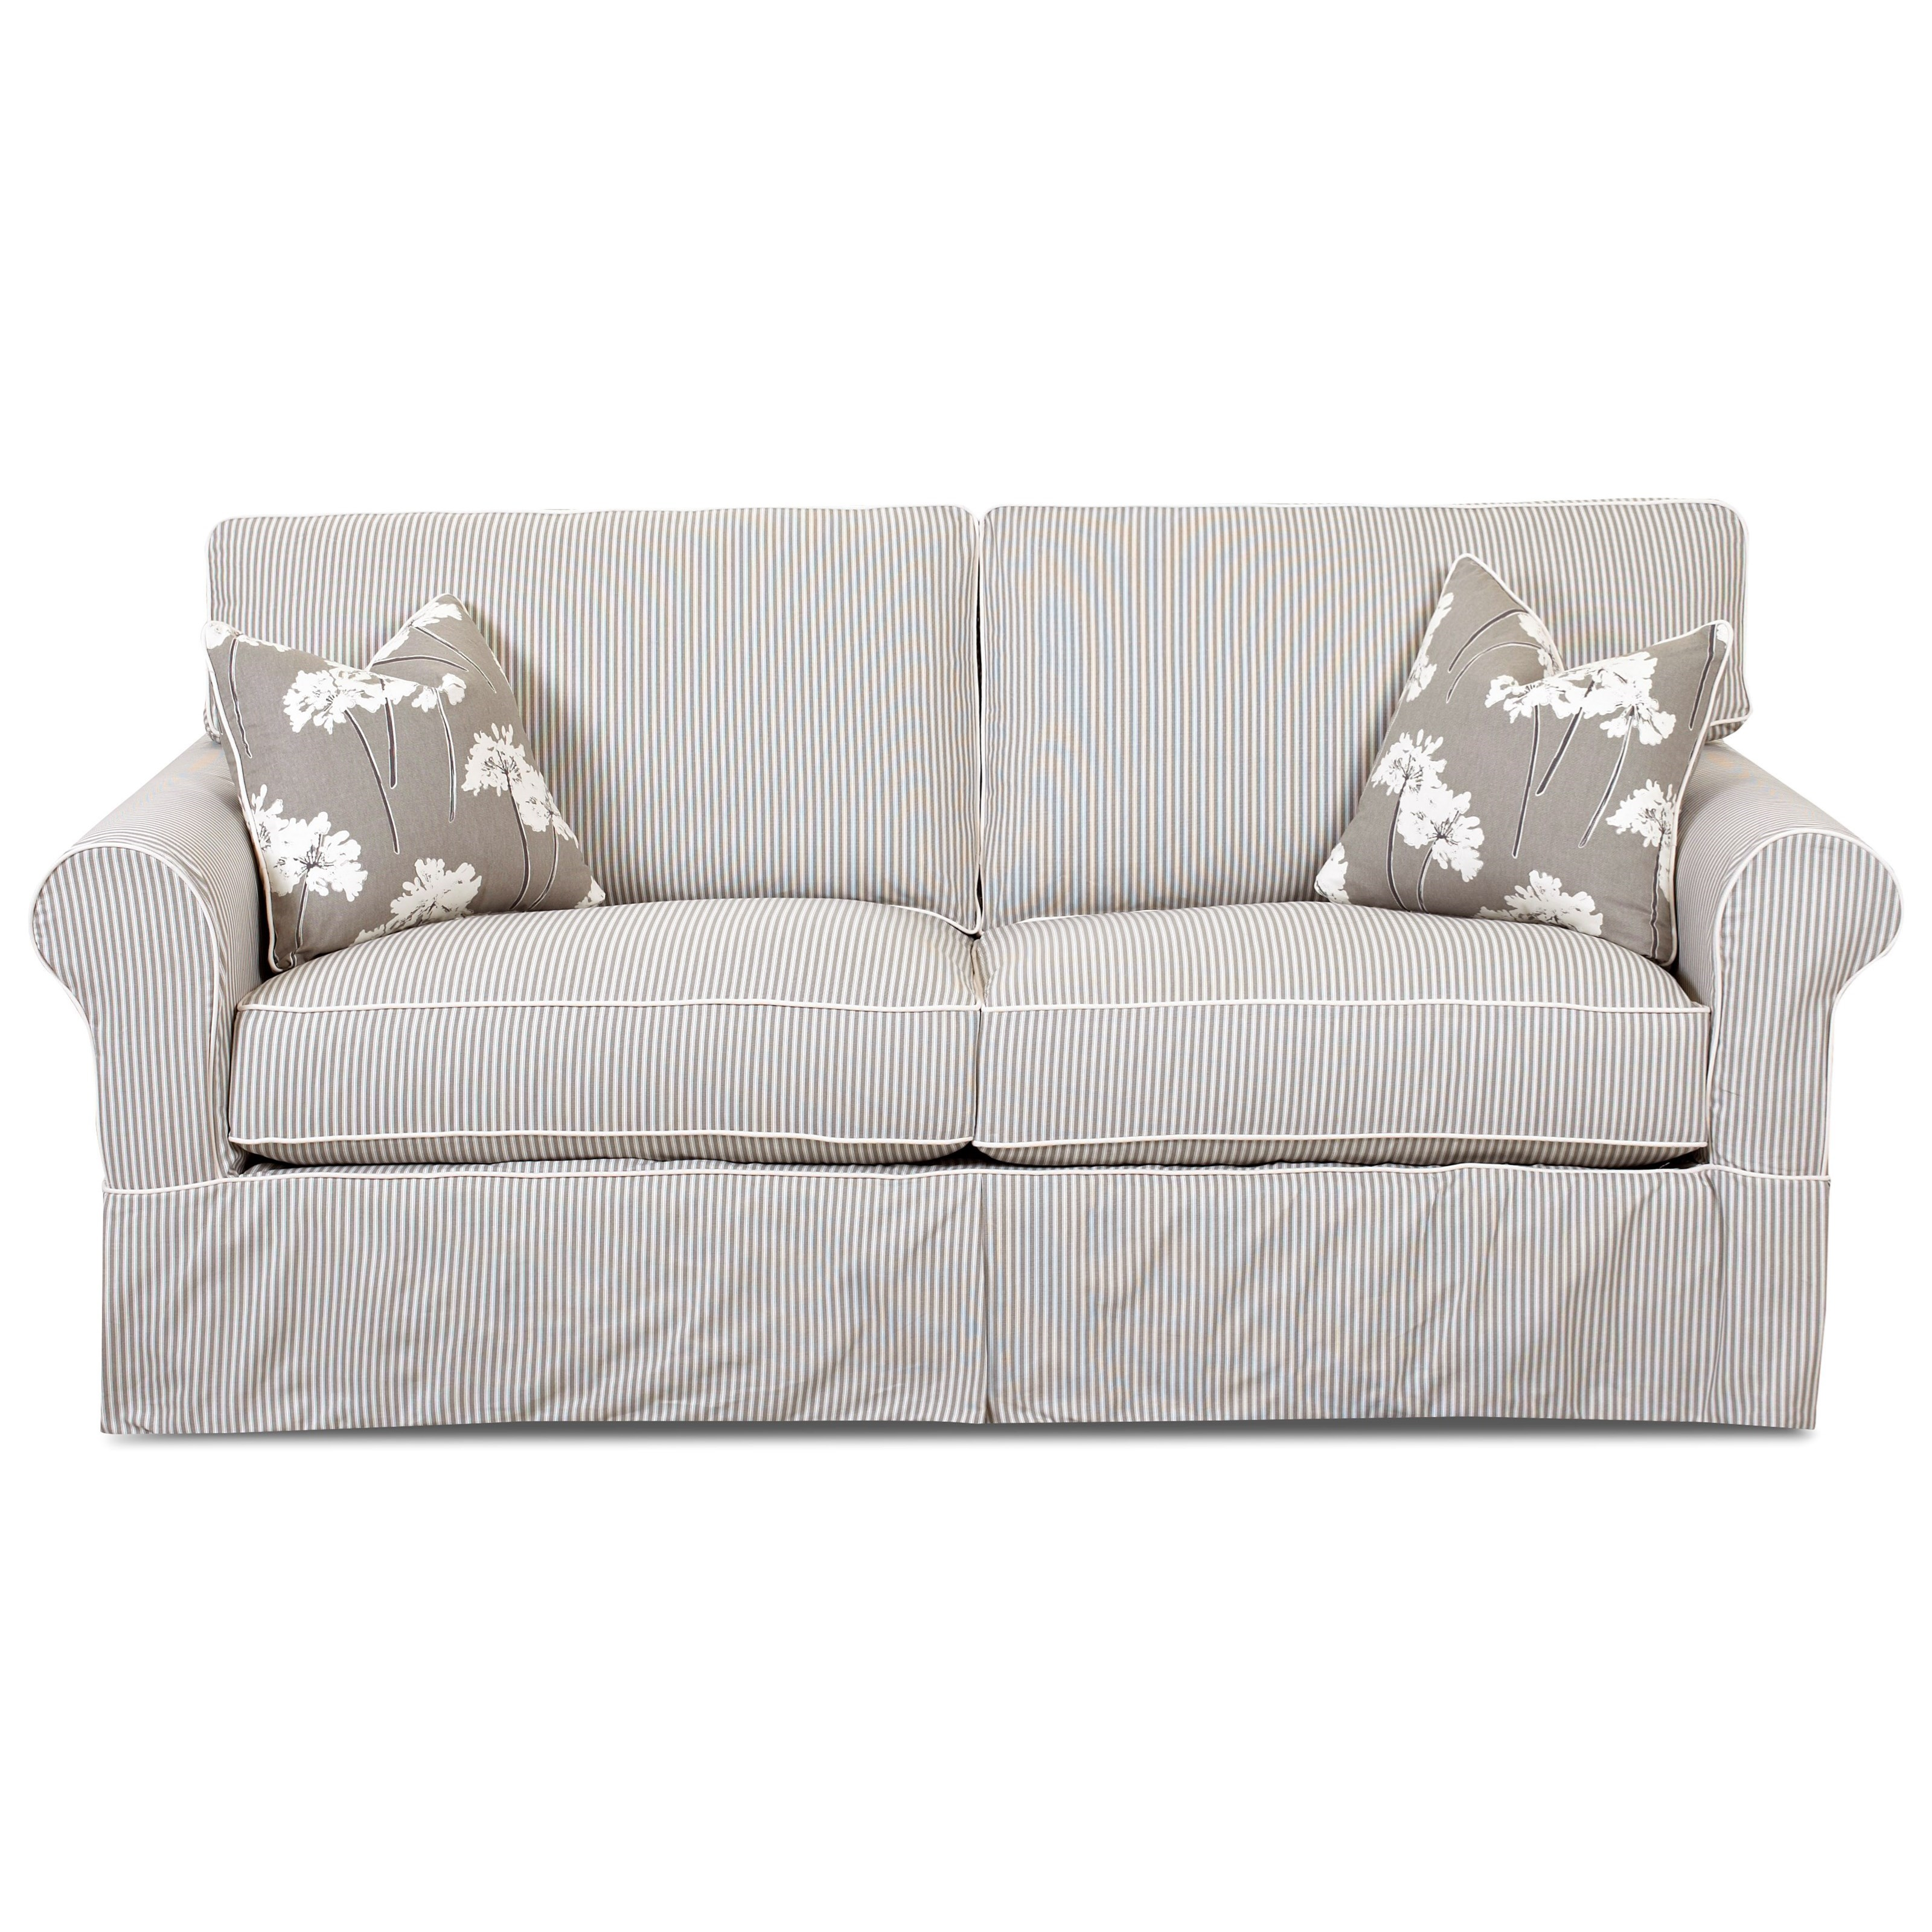 Superbe Traditional Sofa With Rolled Arms And Skirted Base